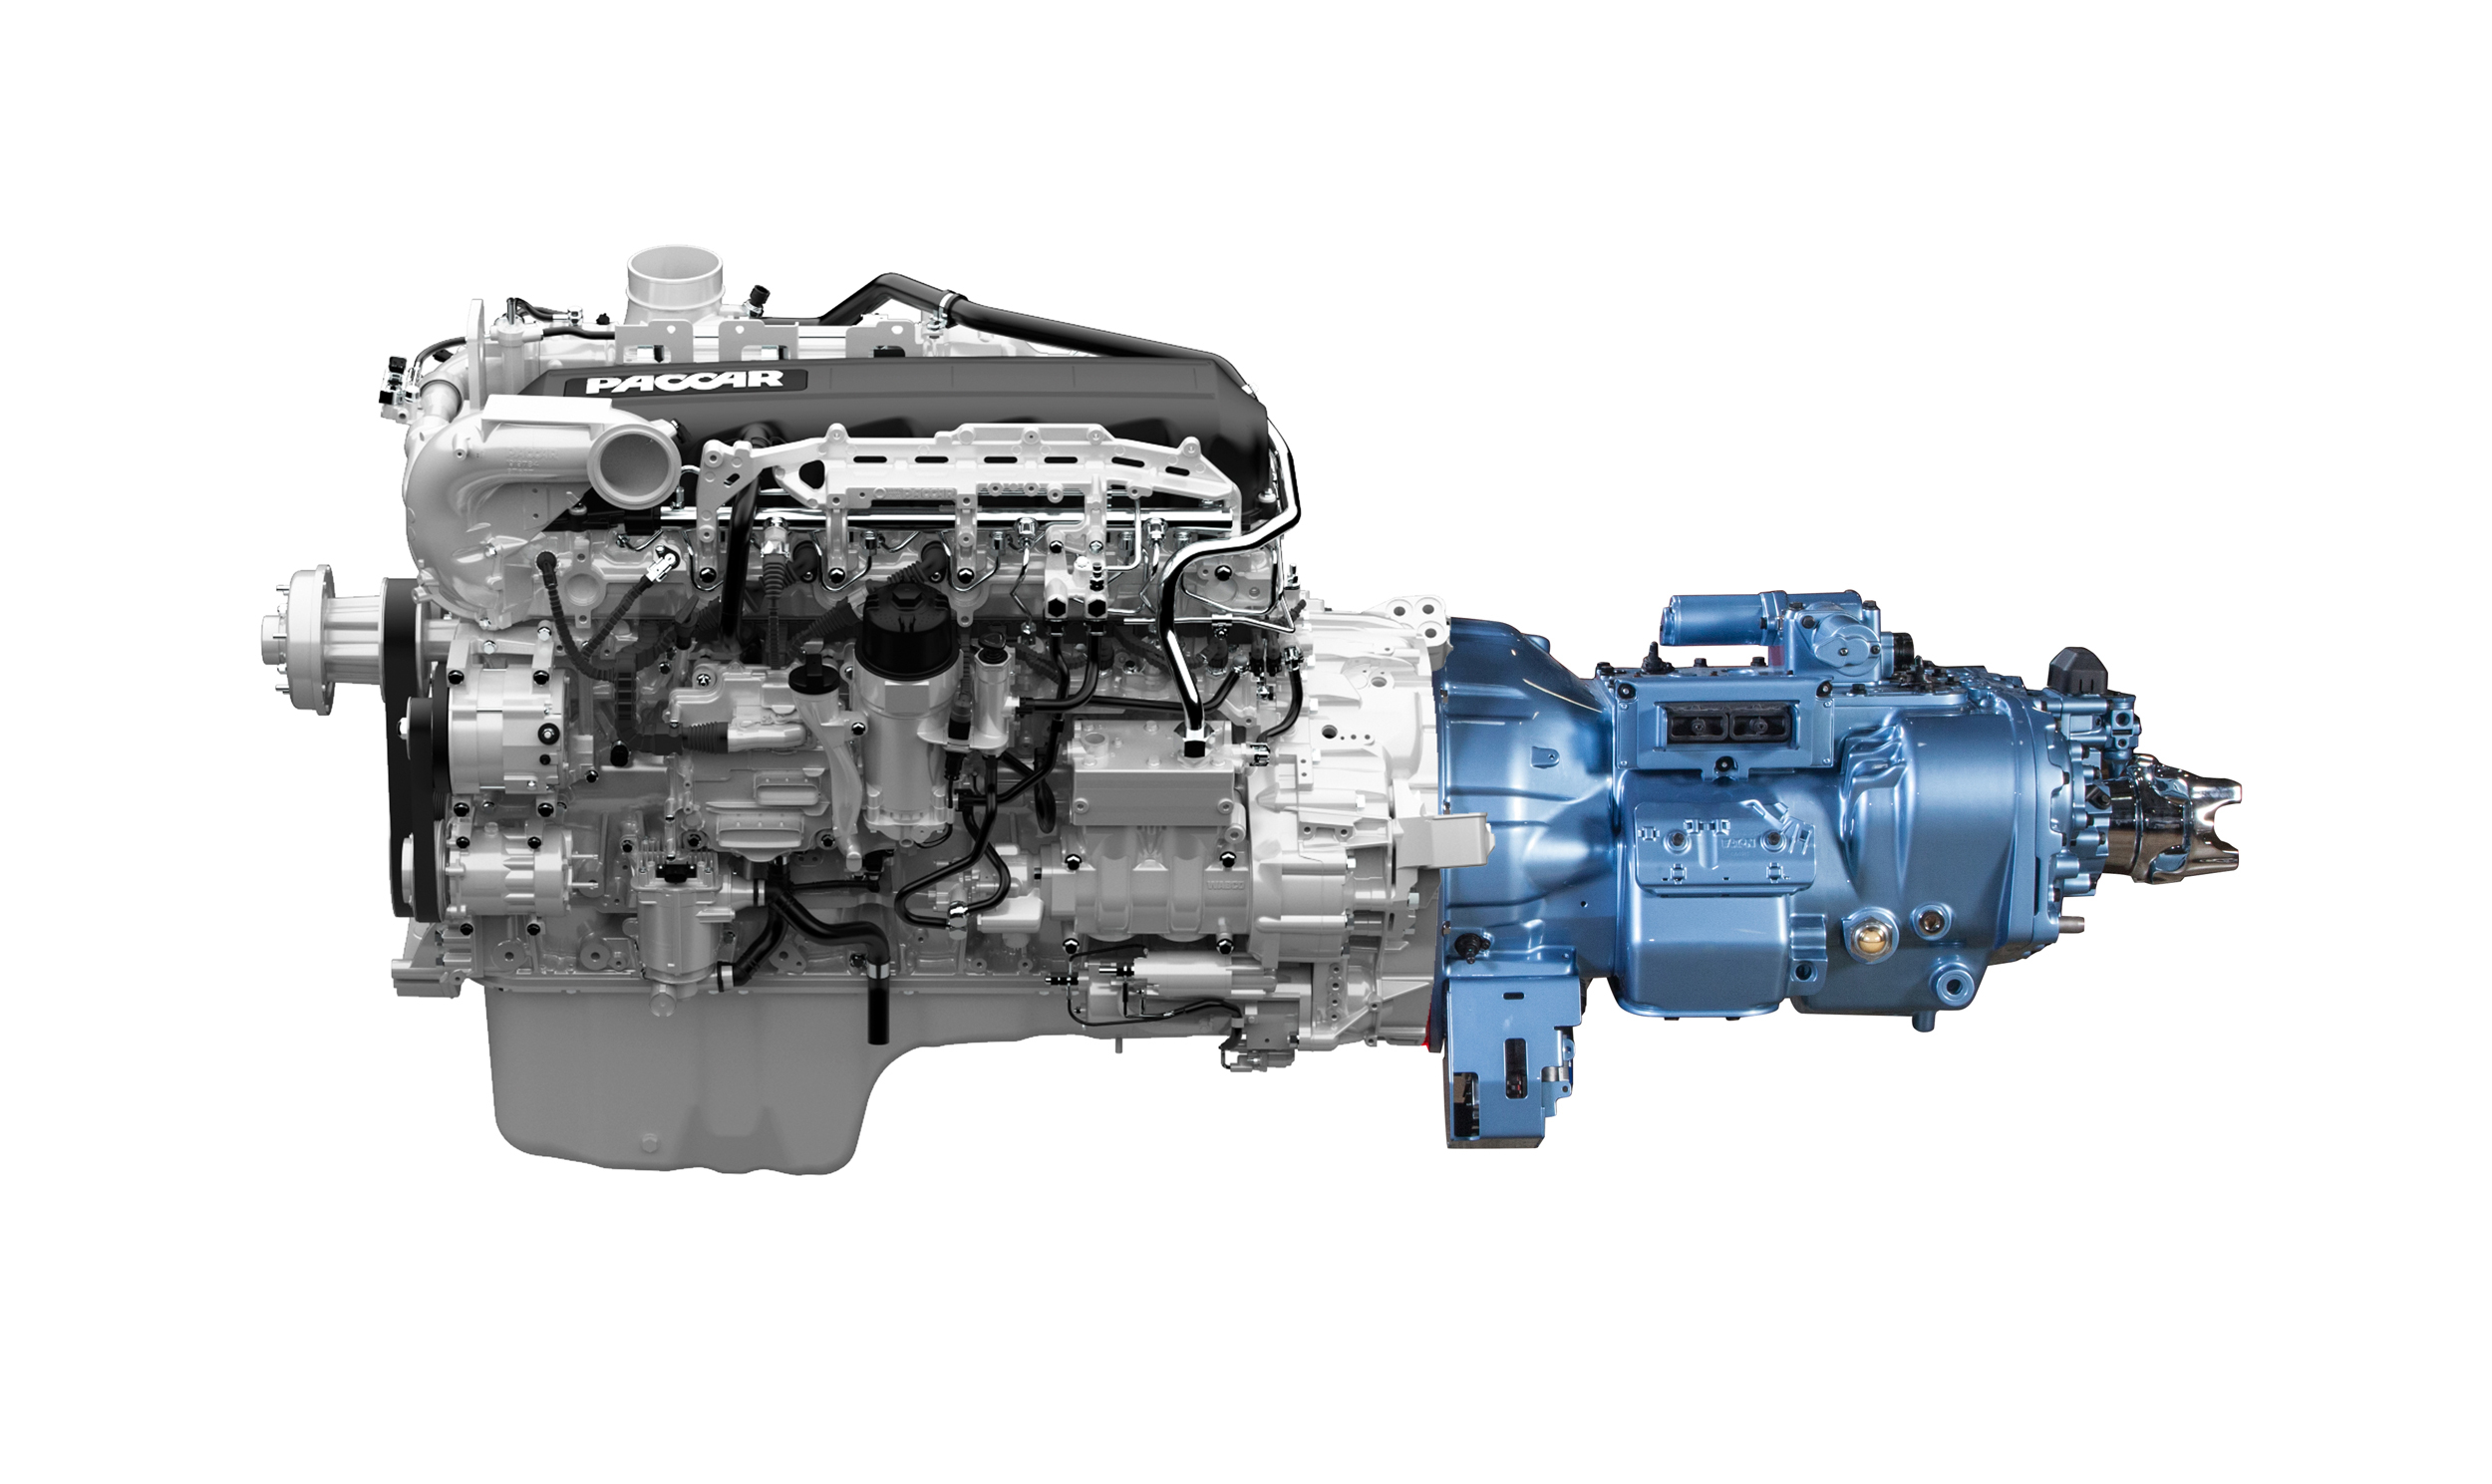 Watch moreover Eaton Launches Optimized Fuller Advantage E2 84 A2 Series Transmission also Lav 25 8x8 light armoured vehicle technical data sheet specifications pictures video as well Mack Electrical Service Documentation moreover 203. on kenworth truck diagram